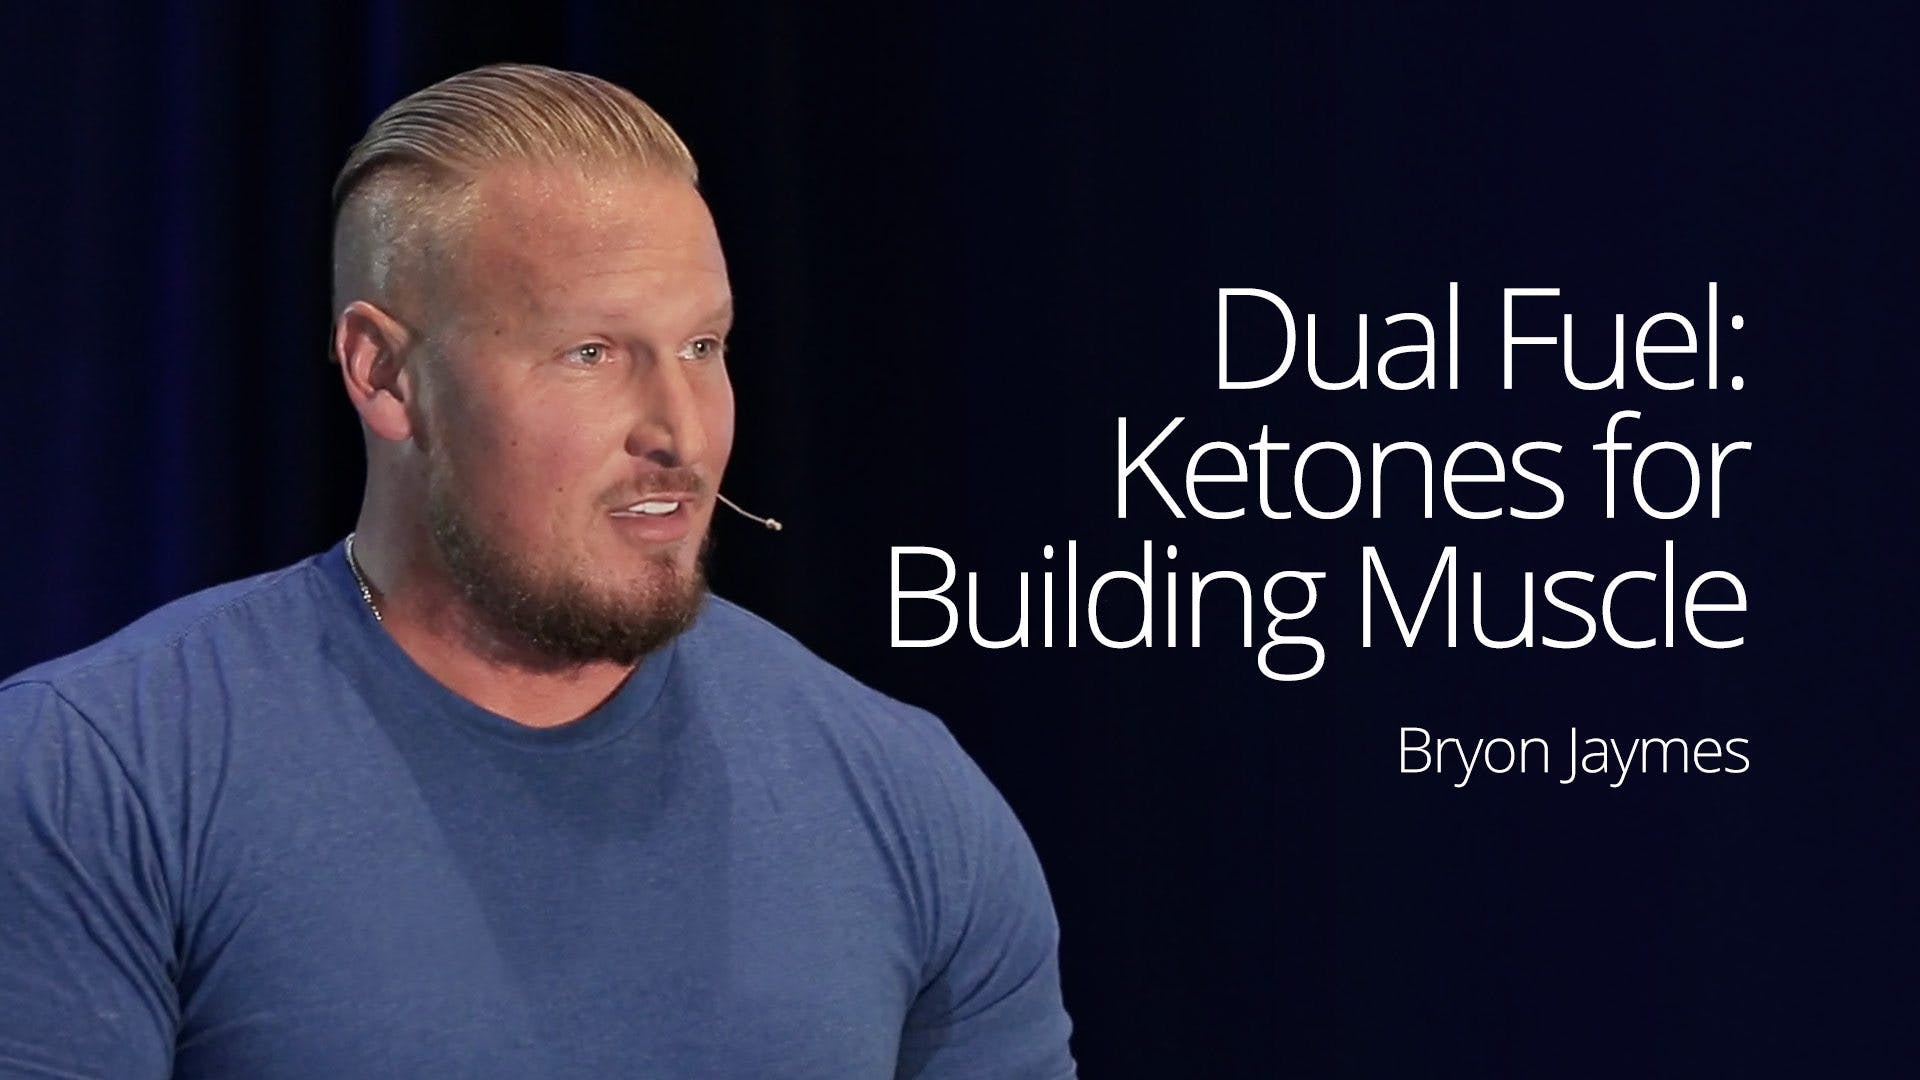 Dual fuel: ketones for building muscle